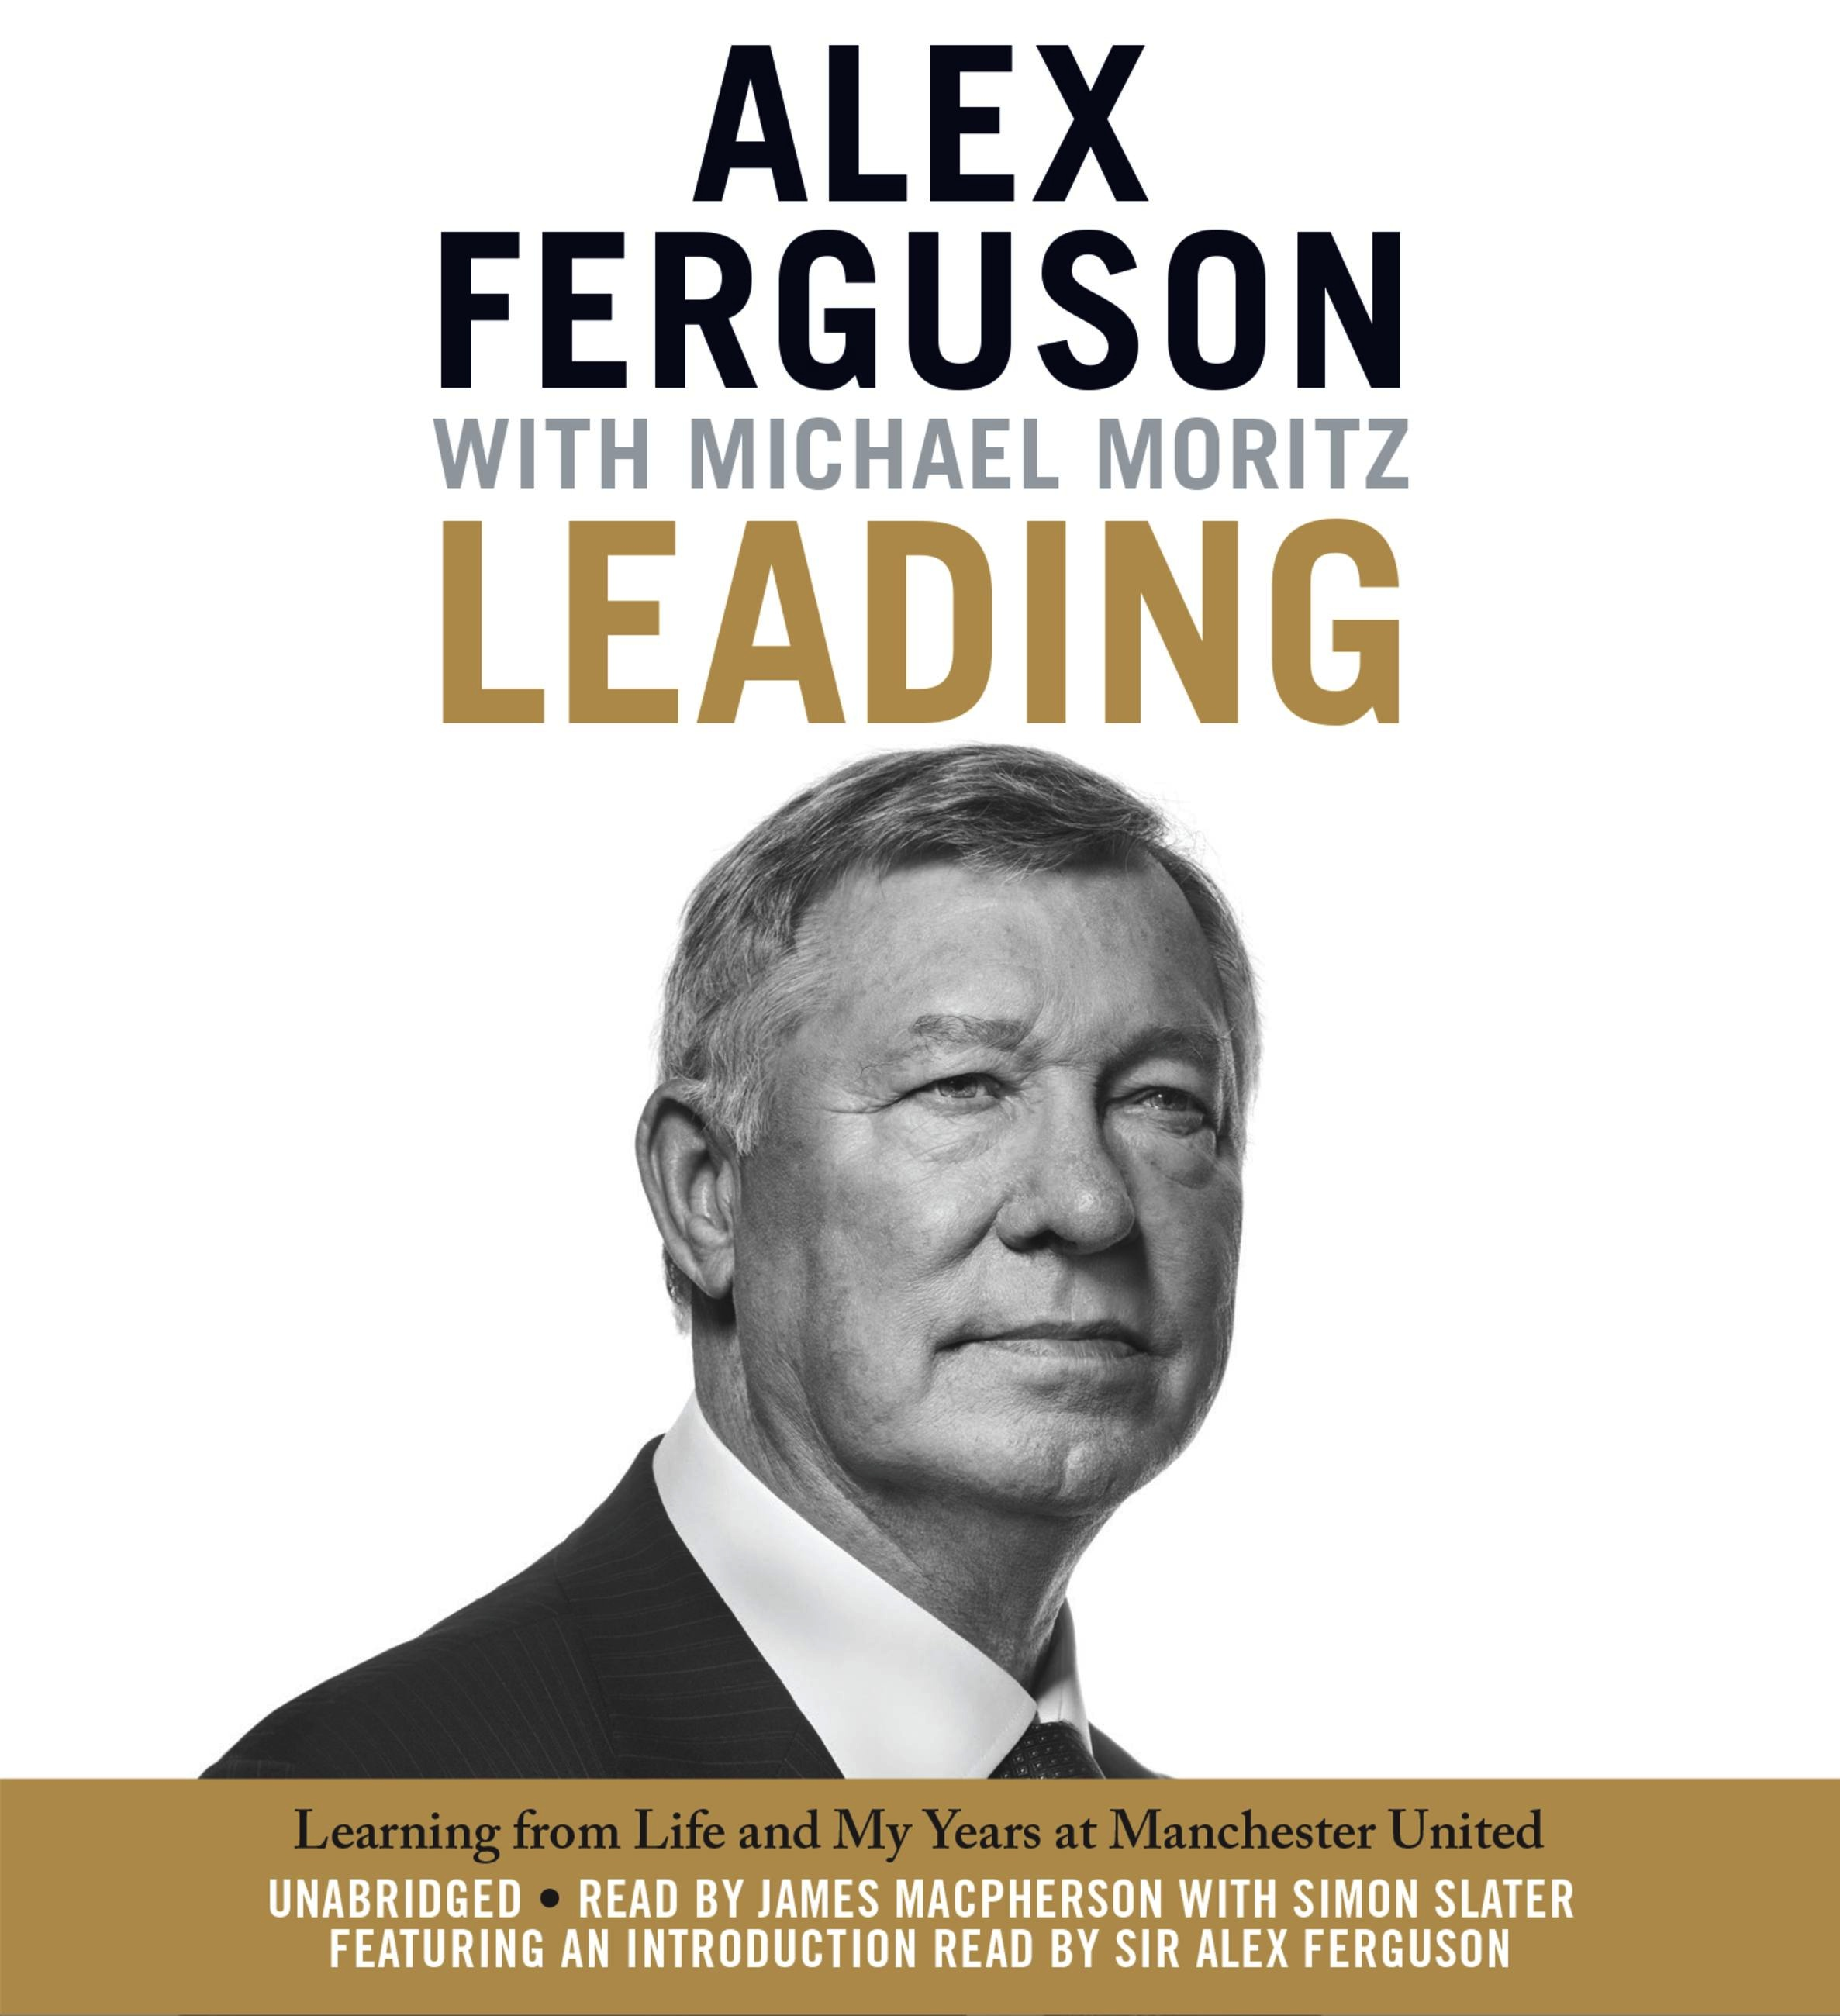 book reviewmy autobiographyby sir alex ferguson Alex ferguson: my autobiography is the second official autobiography of alex ferguson, the former football manager and player it was released on 30 october 2013 and covers the period from 2000 to 2013.